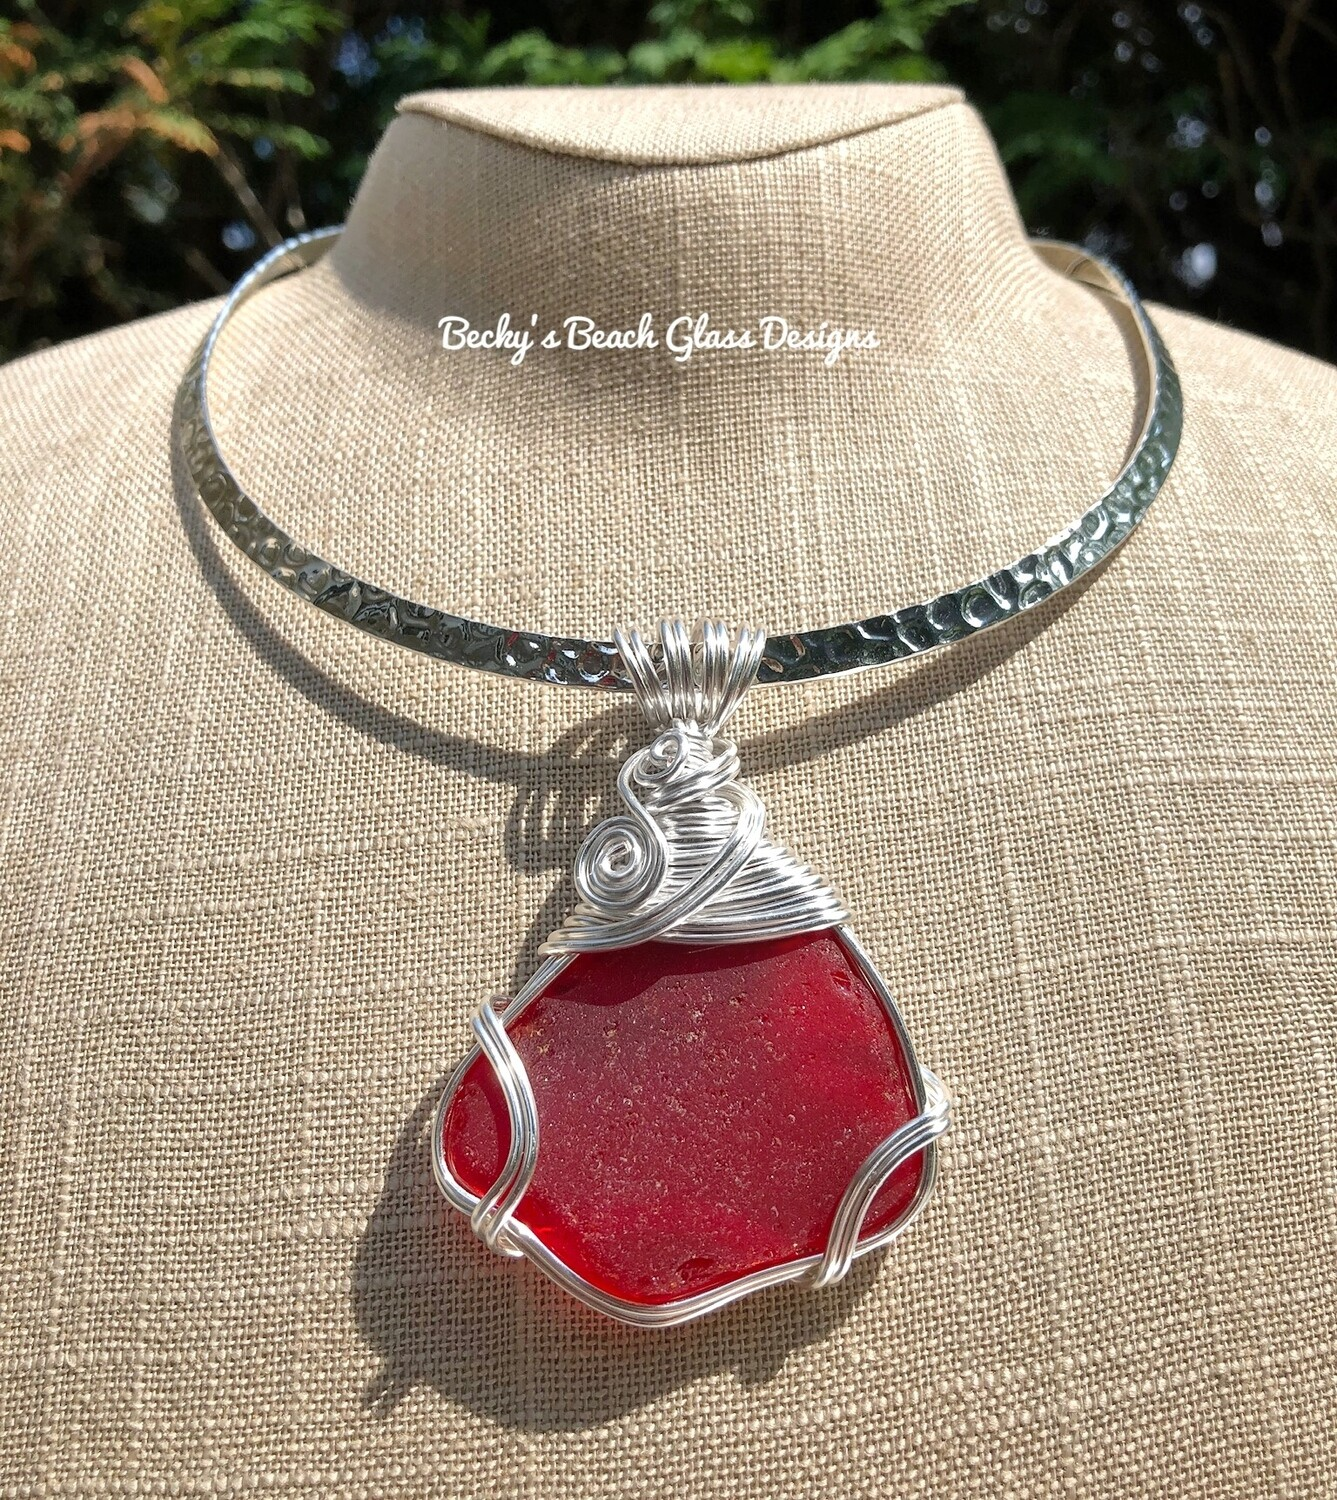 Beautiful Rare Red Sea Glass Pendant Necklace